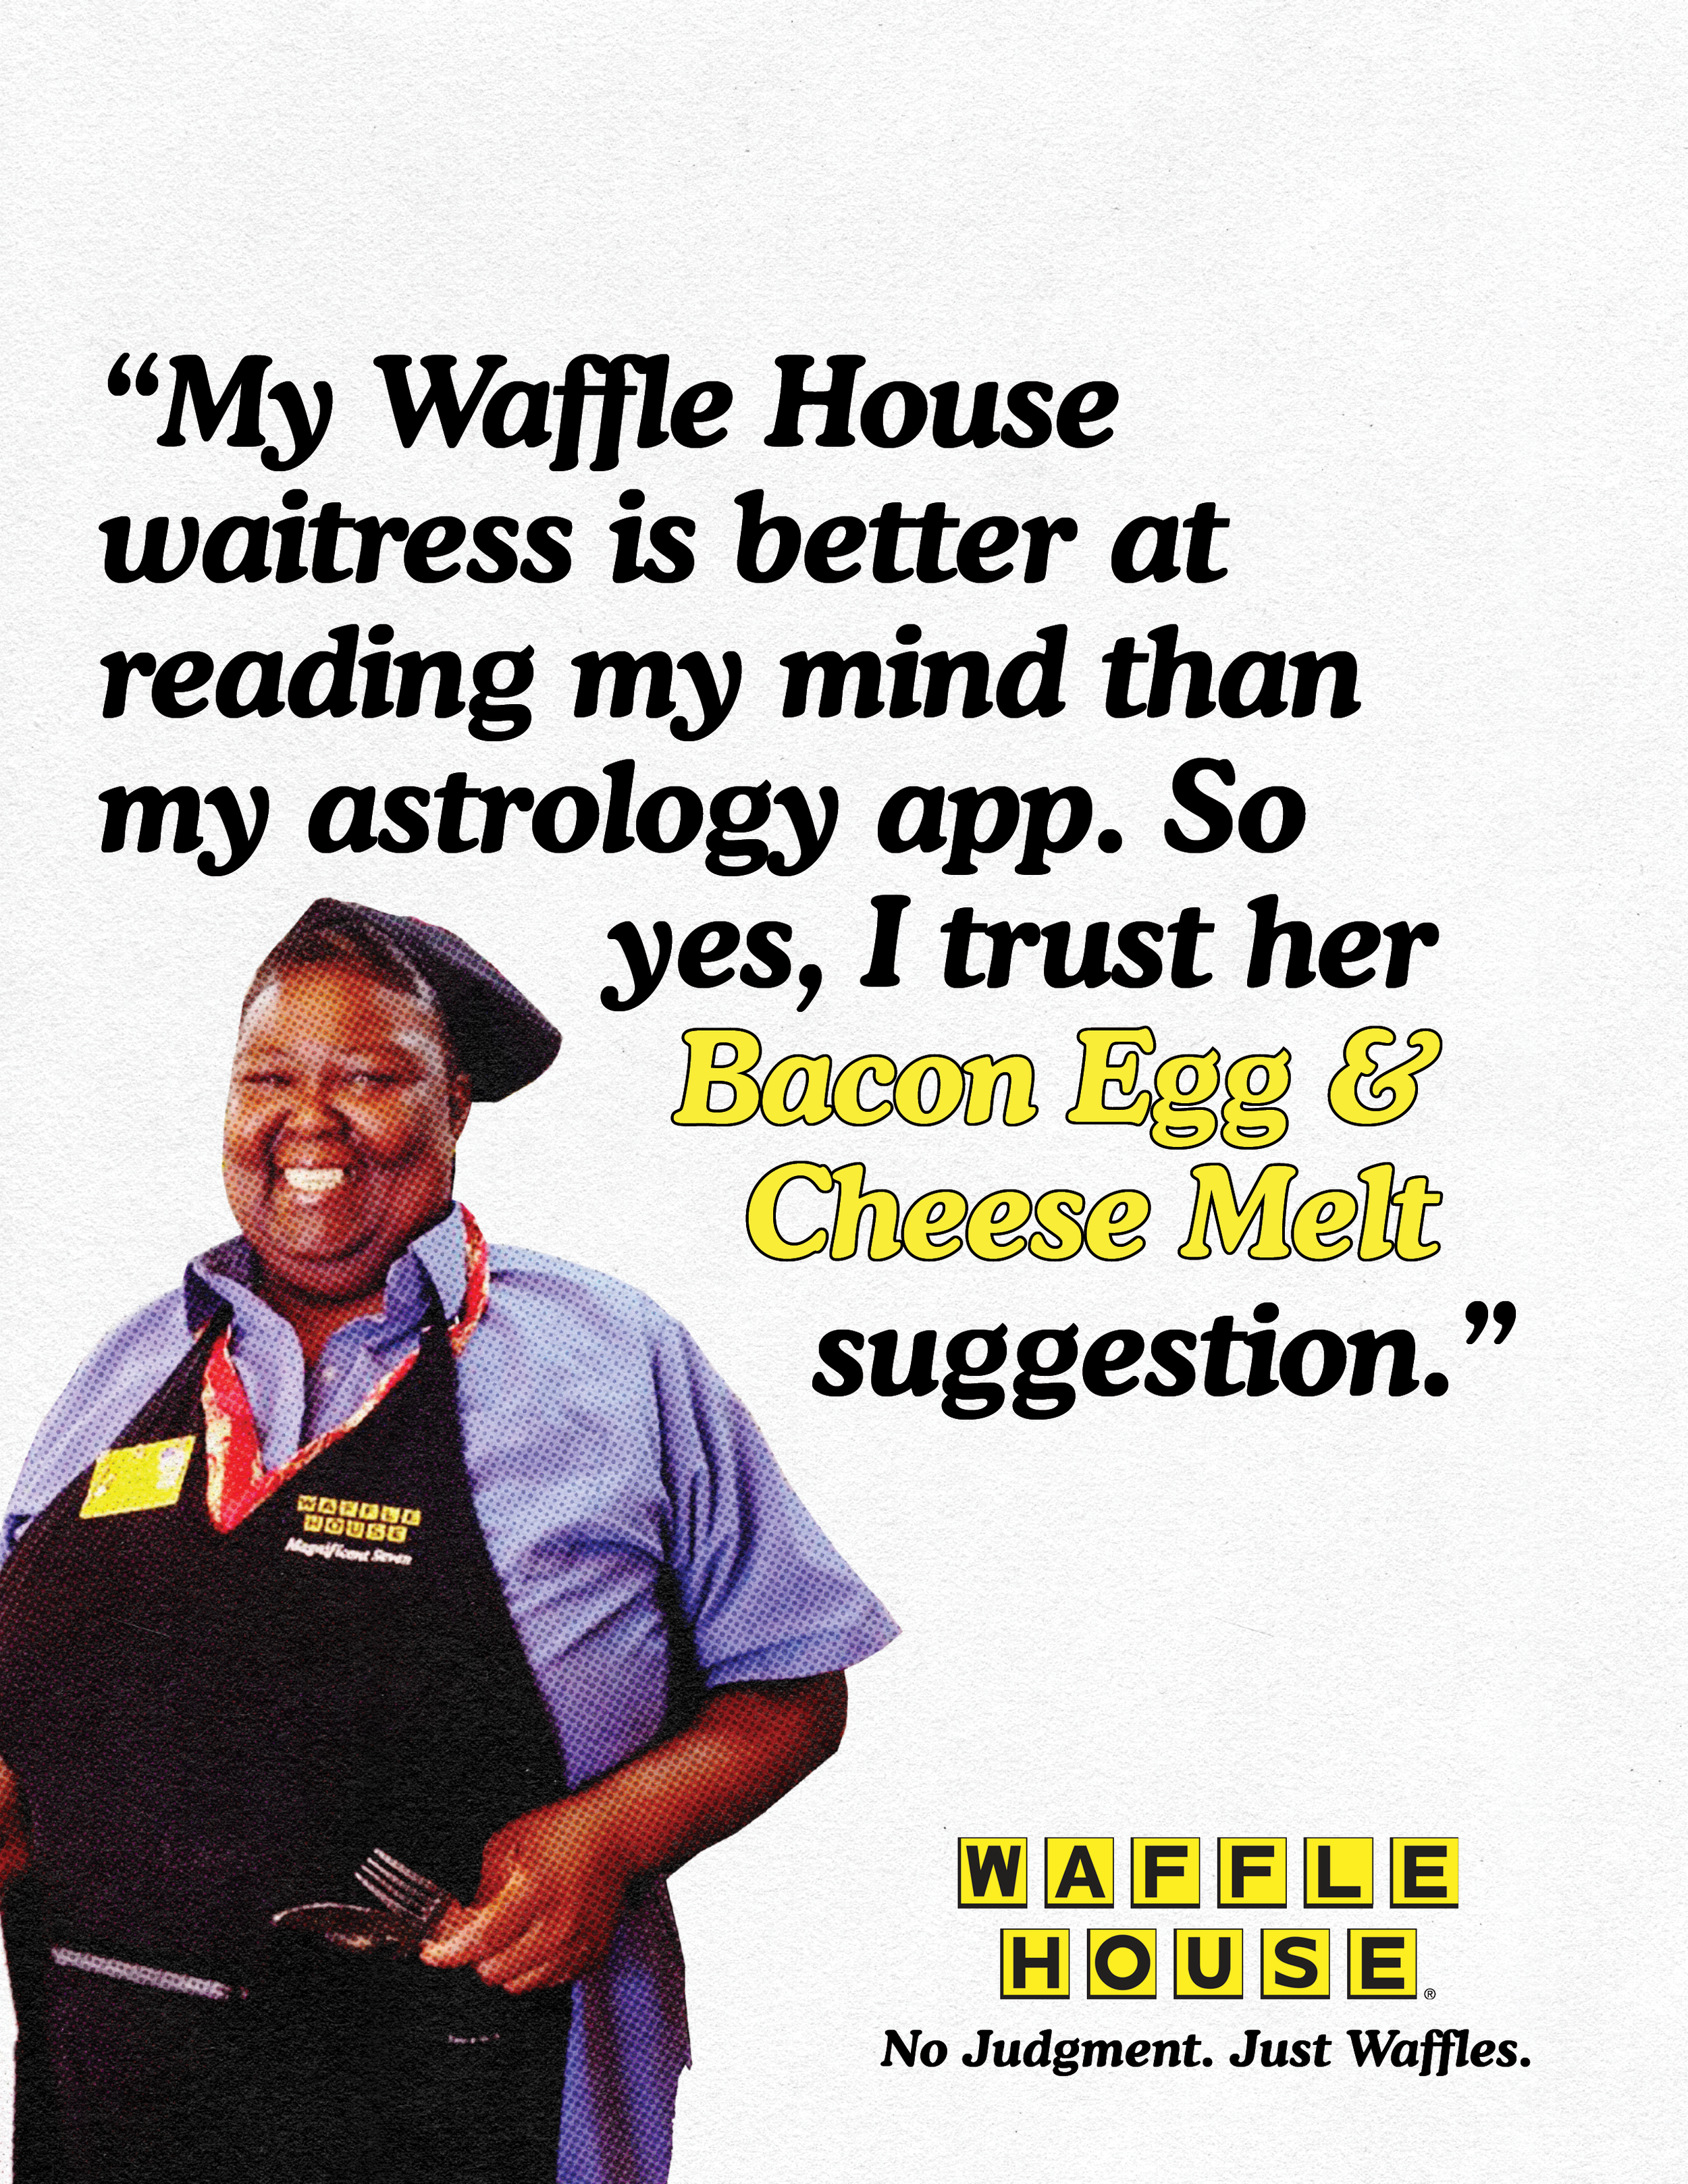 WaffleHouse_Spreads2.png